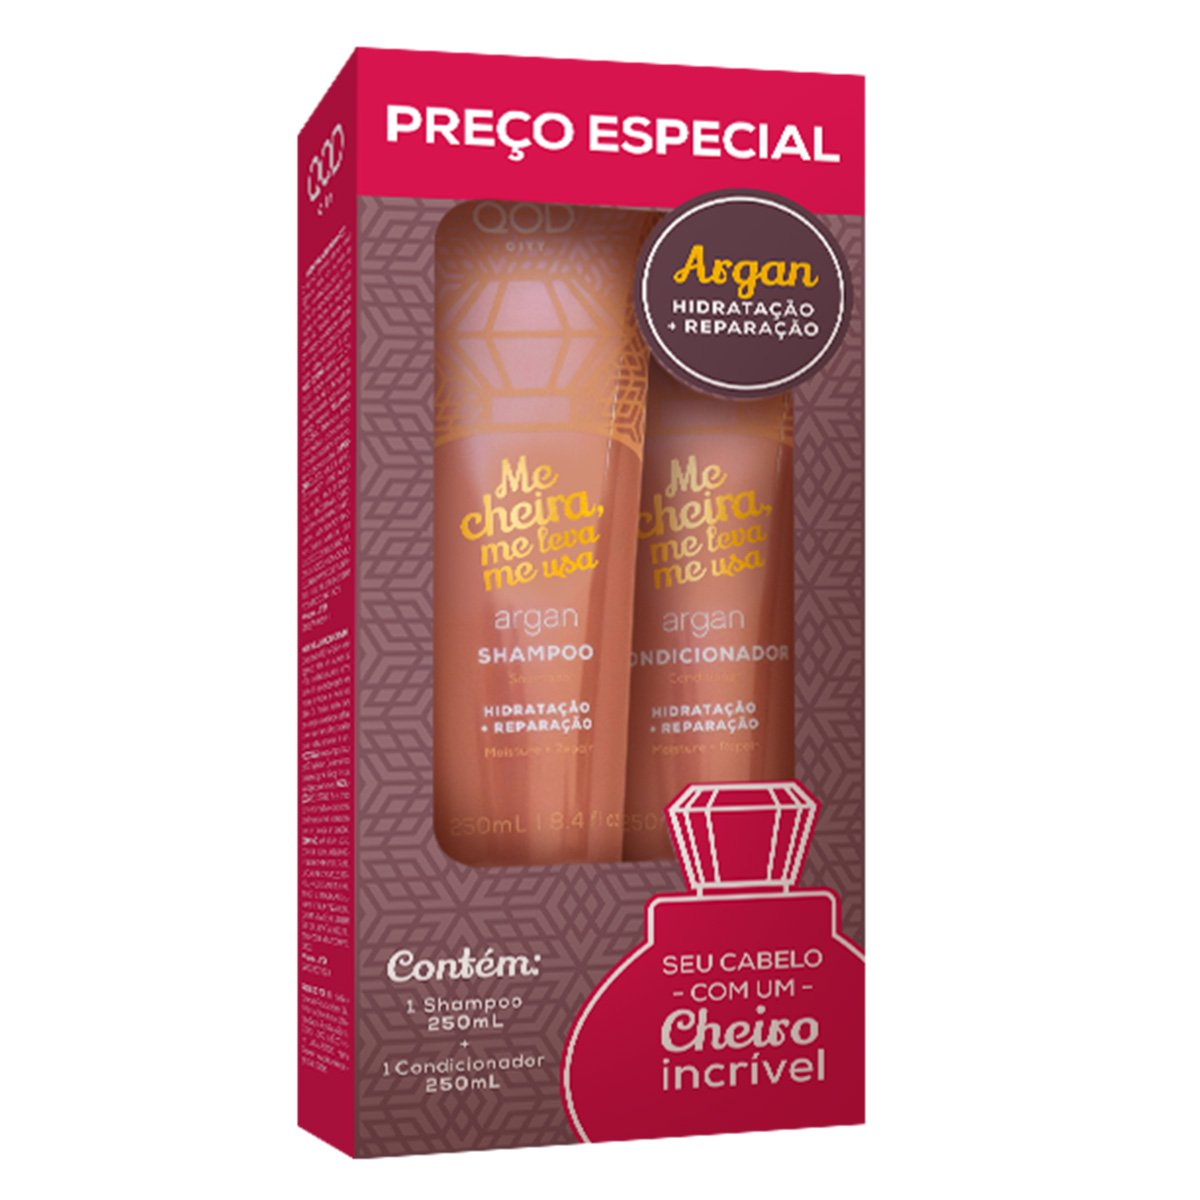 Kit QOD New City Argan Me Cheira Me Leva Me Usa 510g